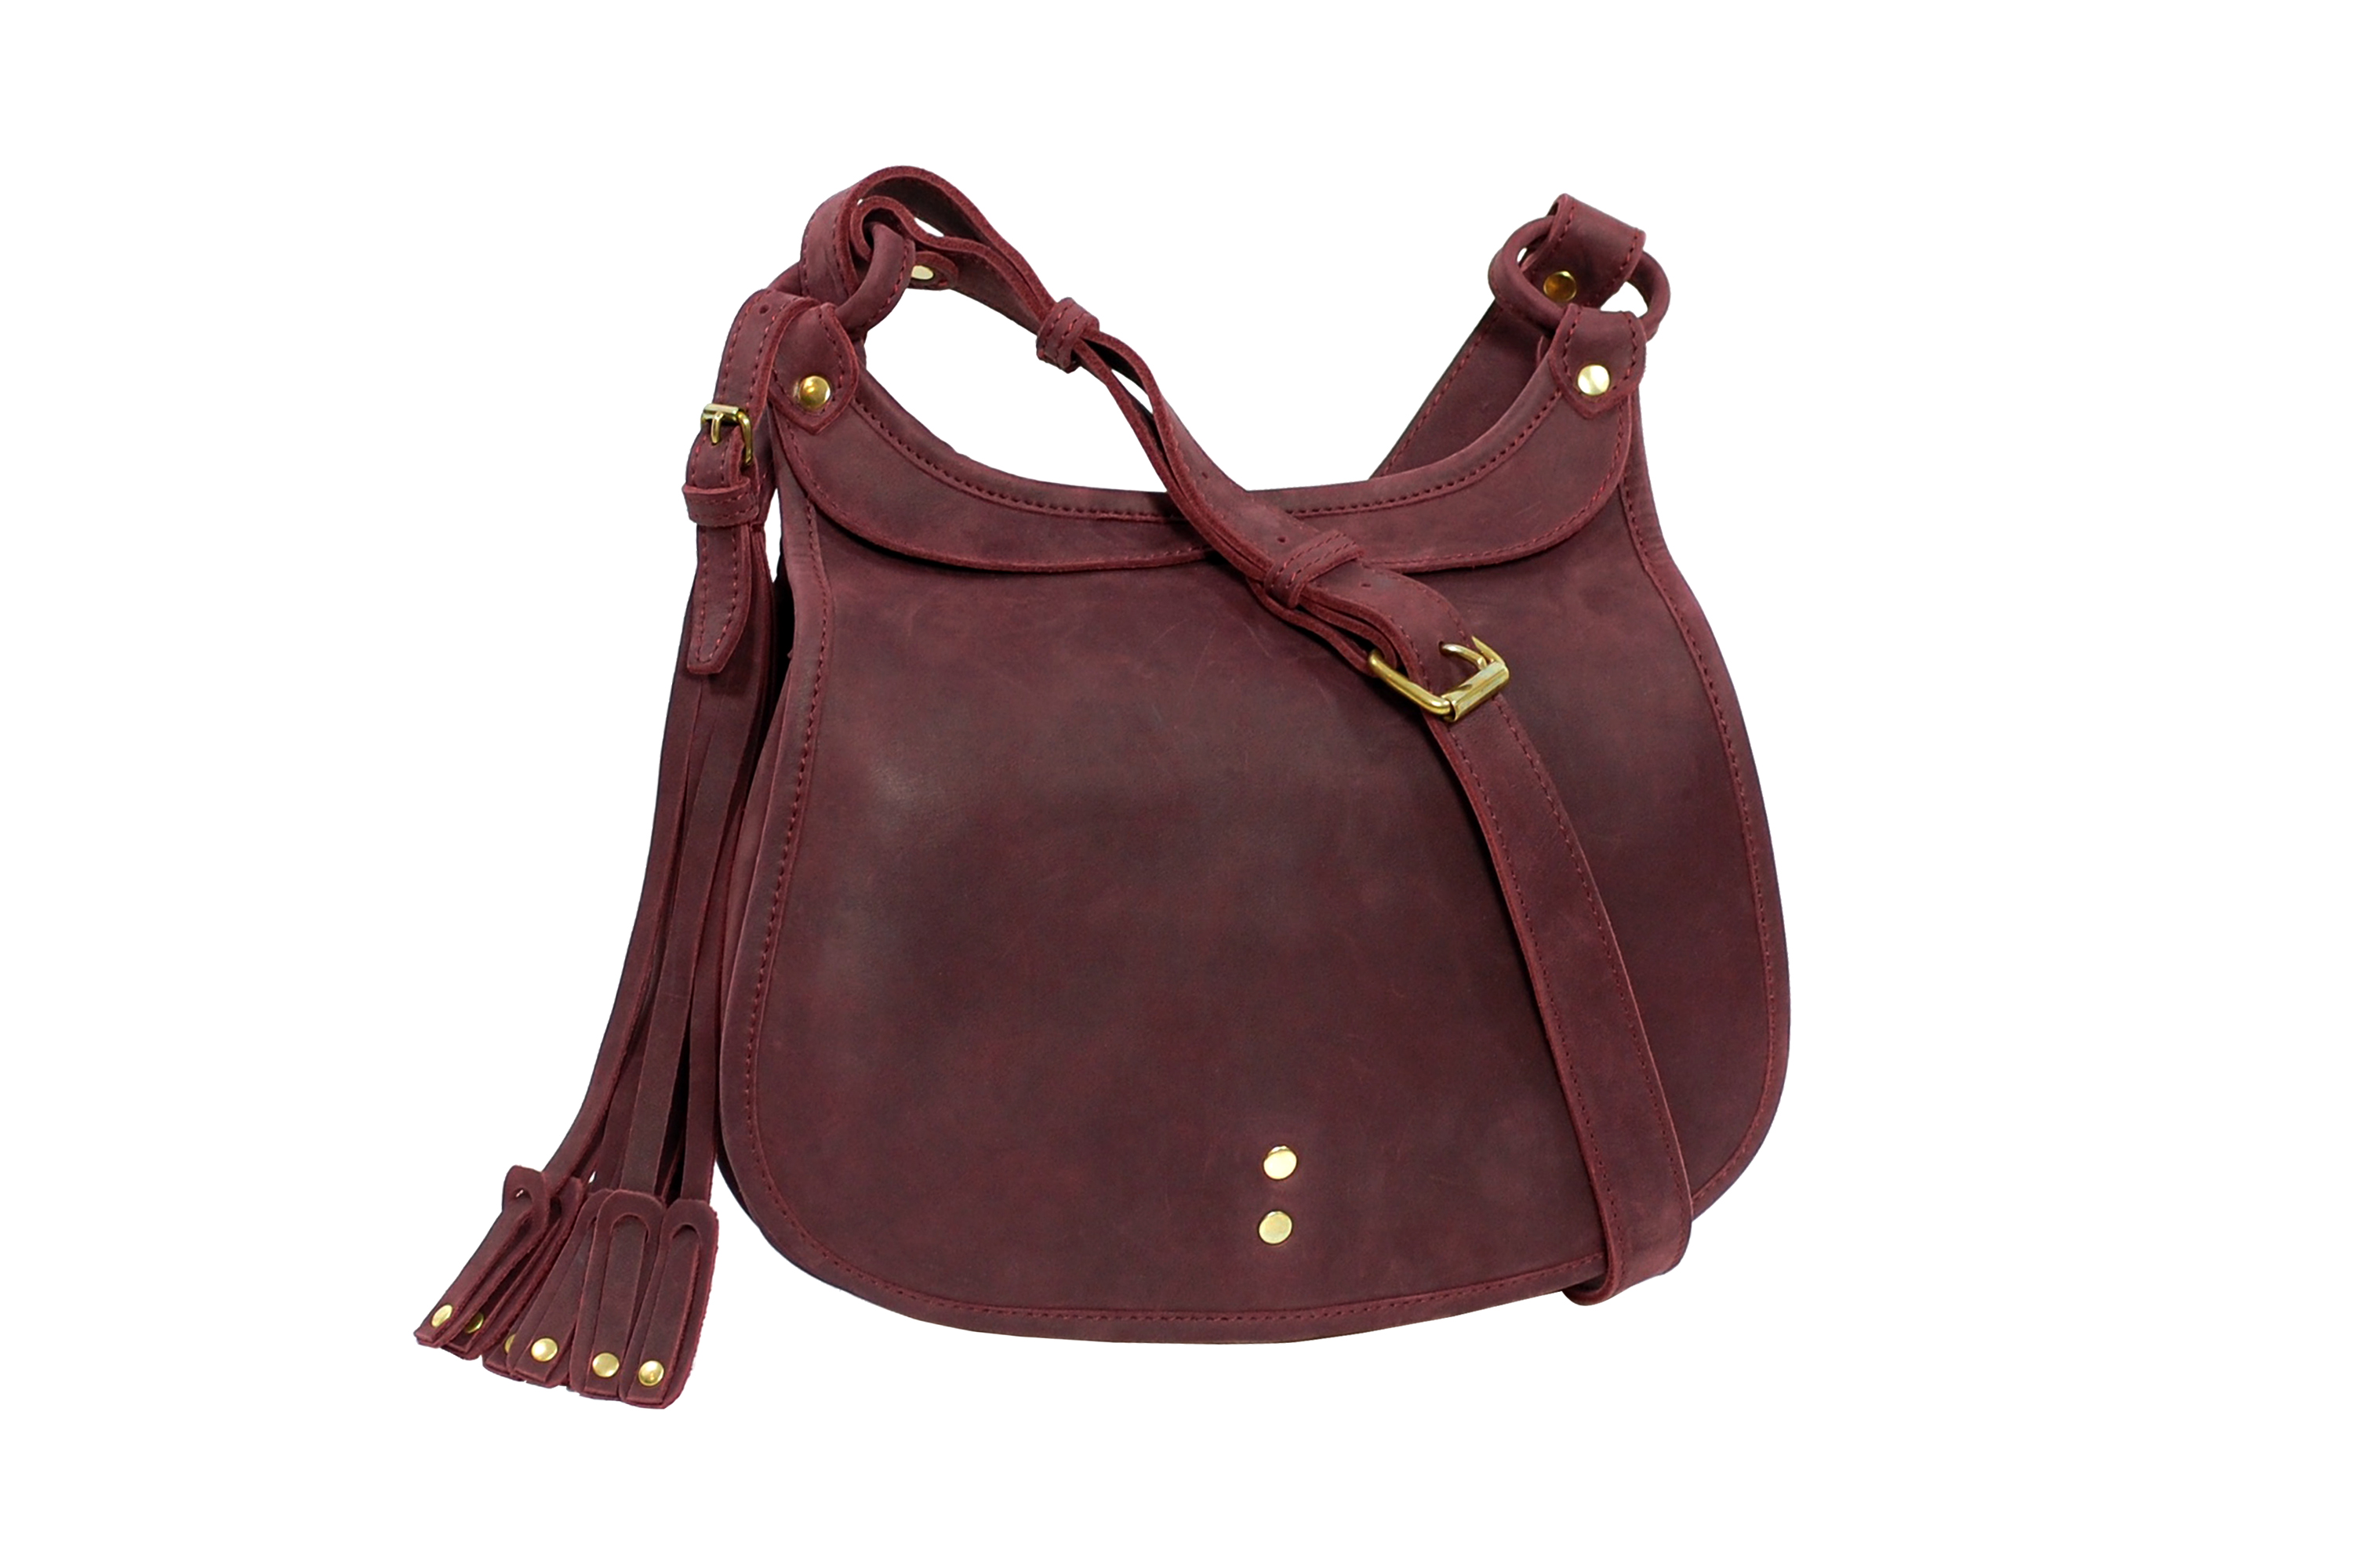 mahout hawk bag in leather